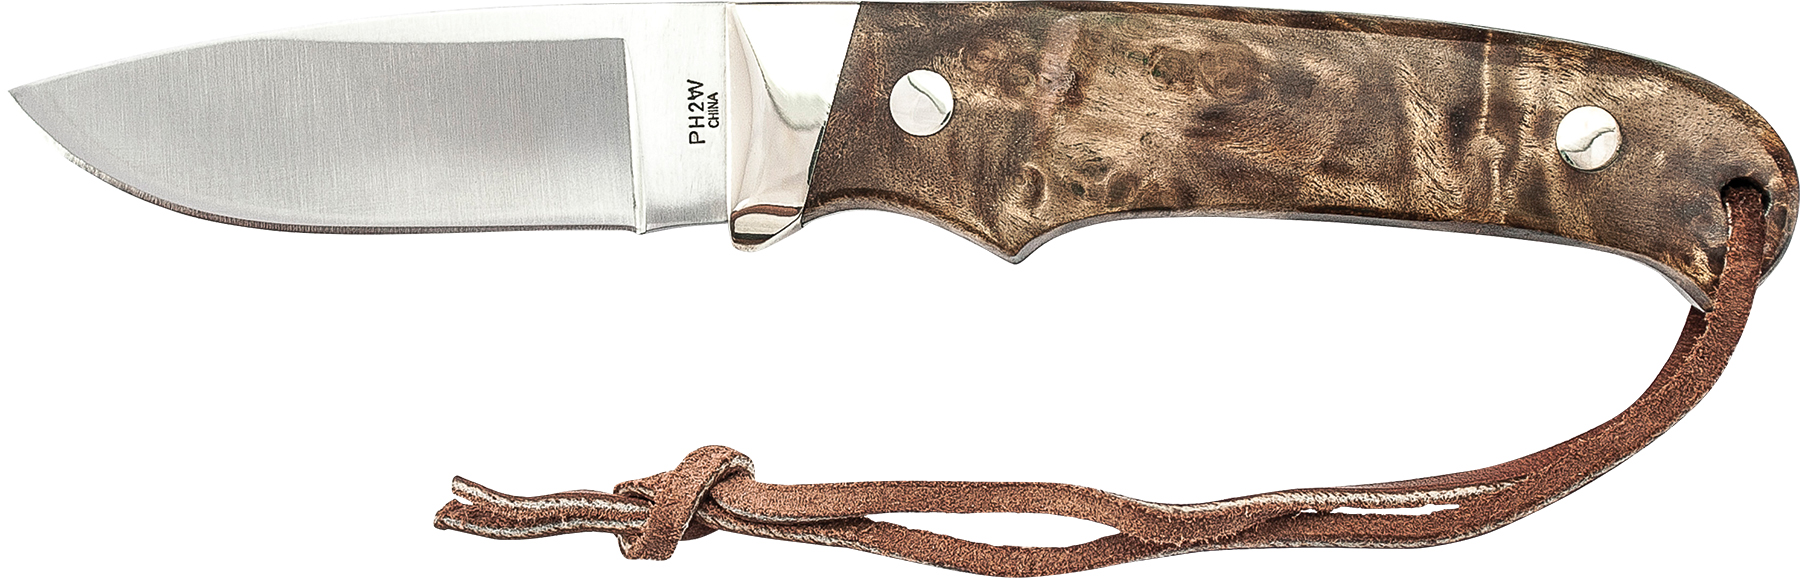 PH2W - Schrade Iron Wood Handle, Nickel Bolster Fixed Blade Knife w/Leather Sheath. 7Cr17MoV Steel.